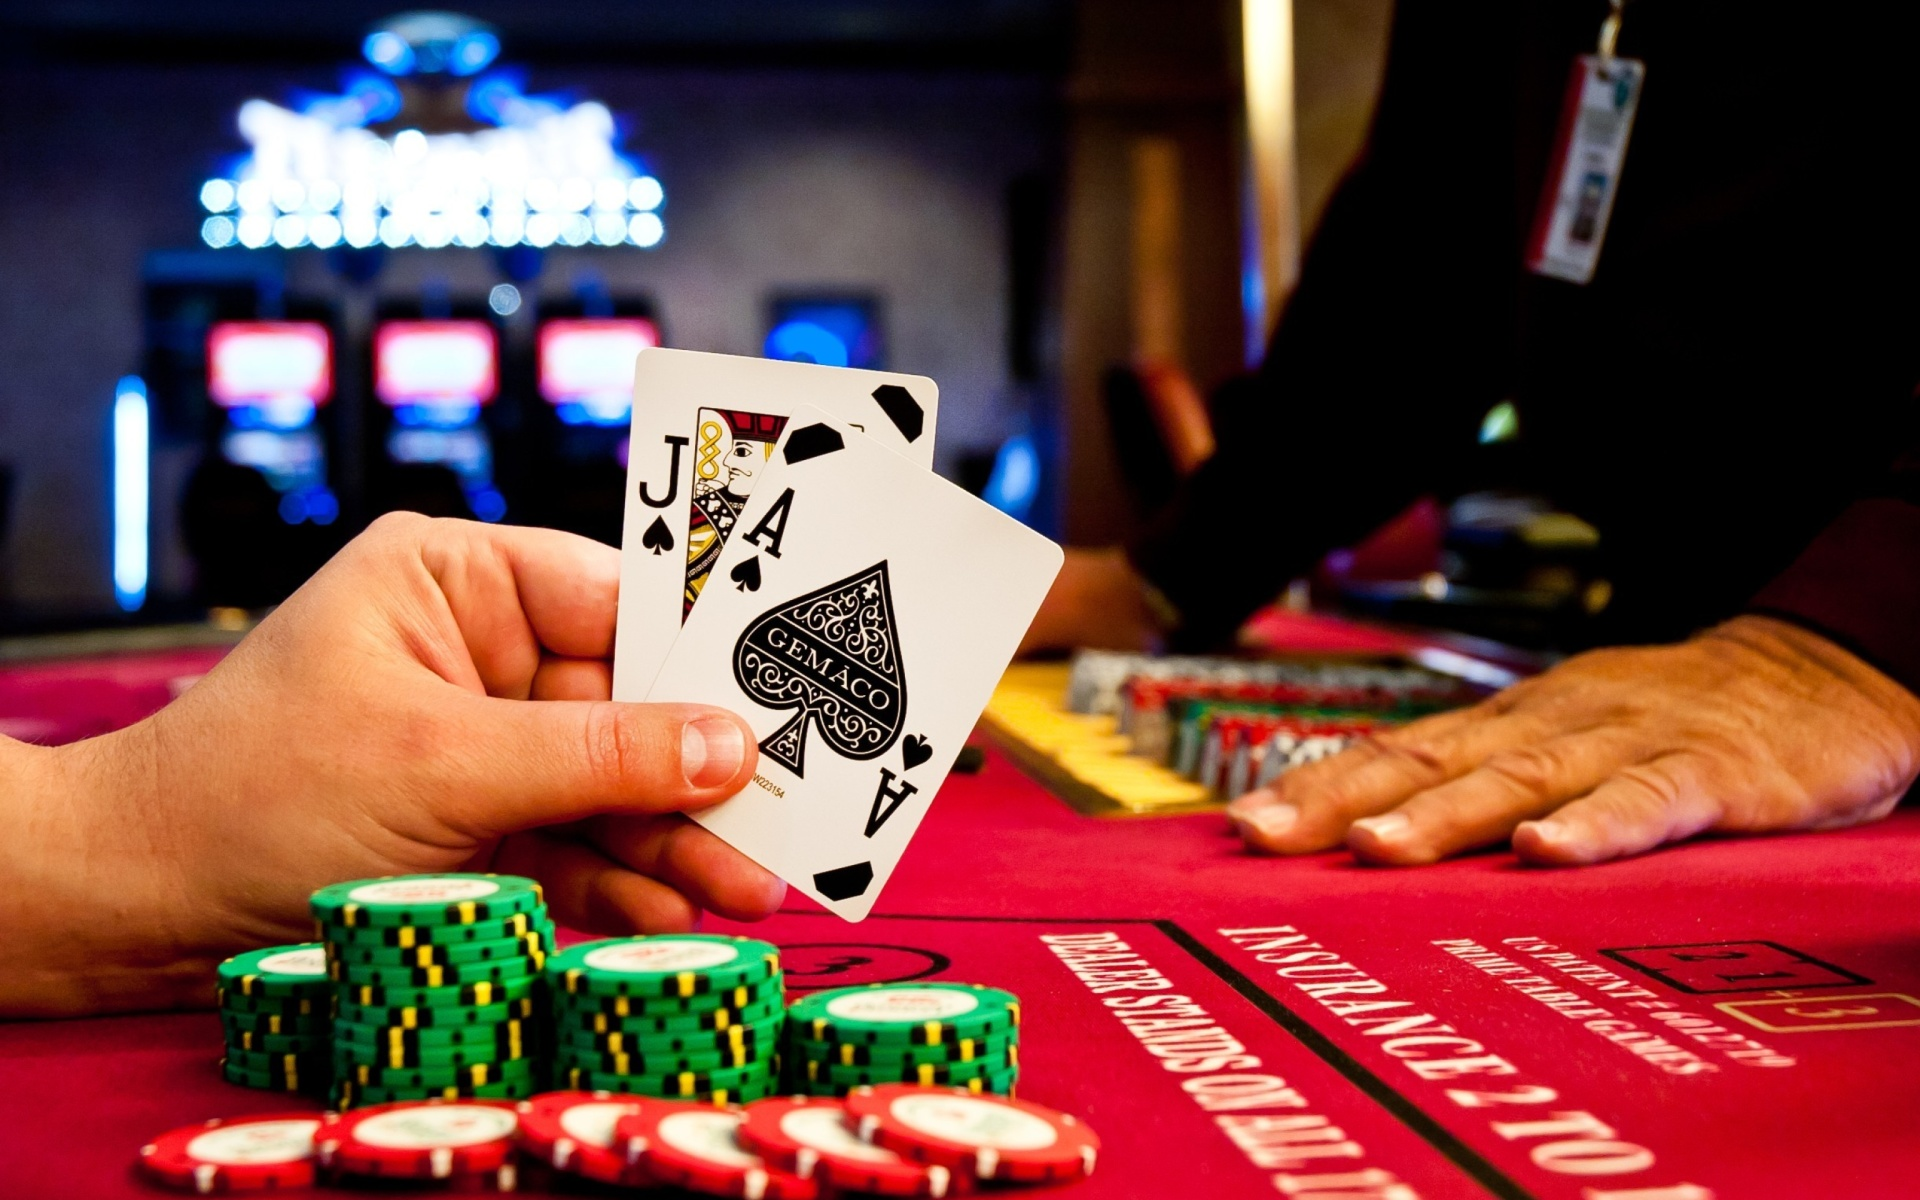 The most suitable activities for the new casino player